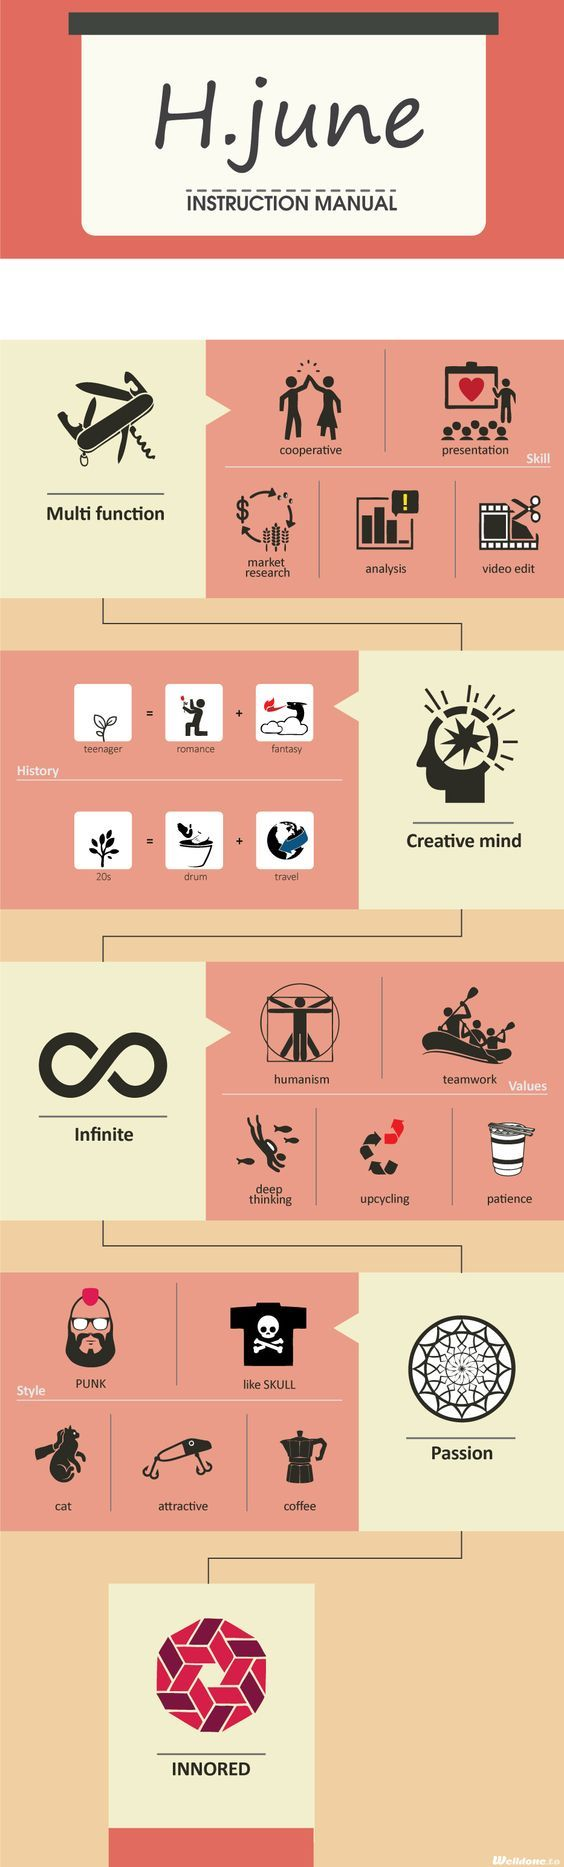 118 best work images on pinterest | templates, advertising and board, Powerpoint templates